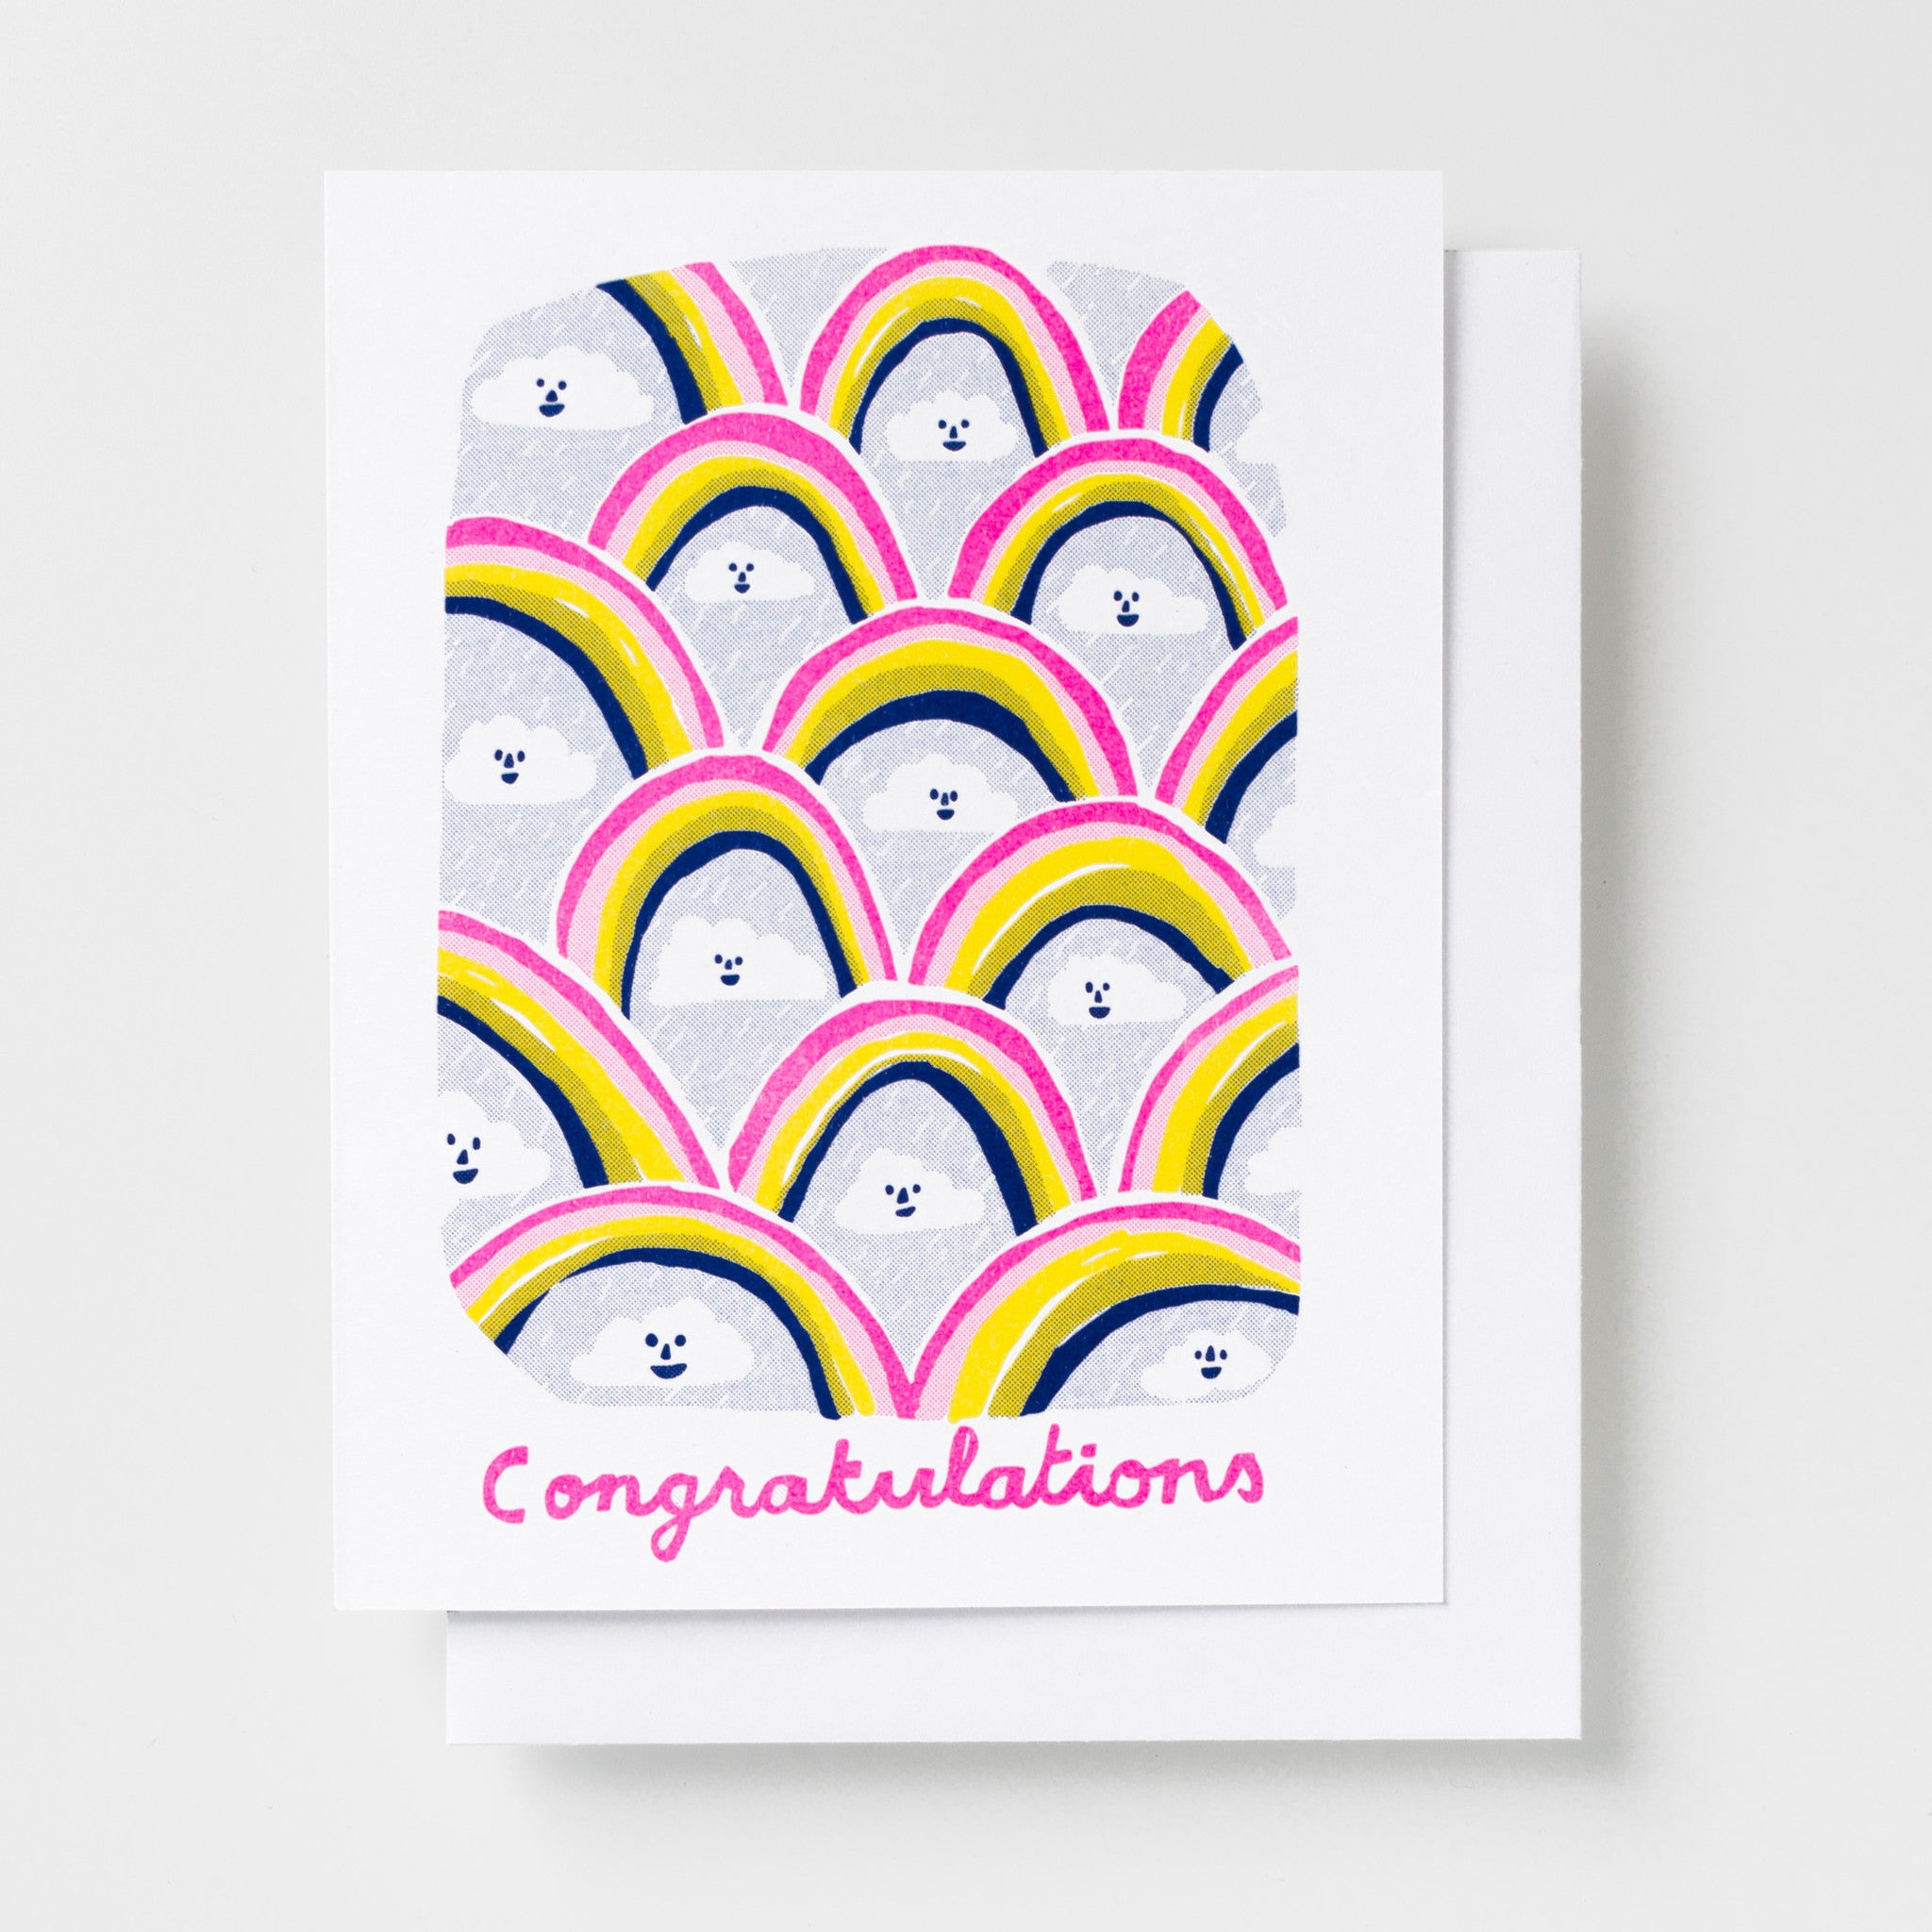 Congratulations greeting card, risograph greeting card featuring an illustration of rainbows and rain clouds